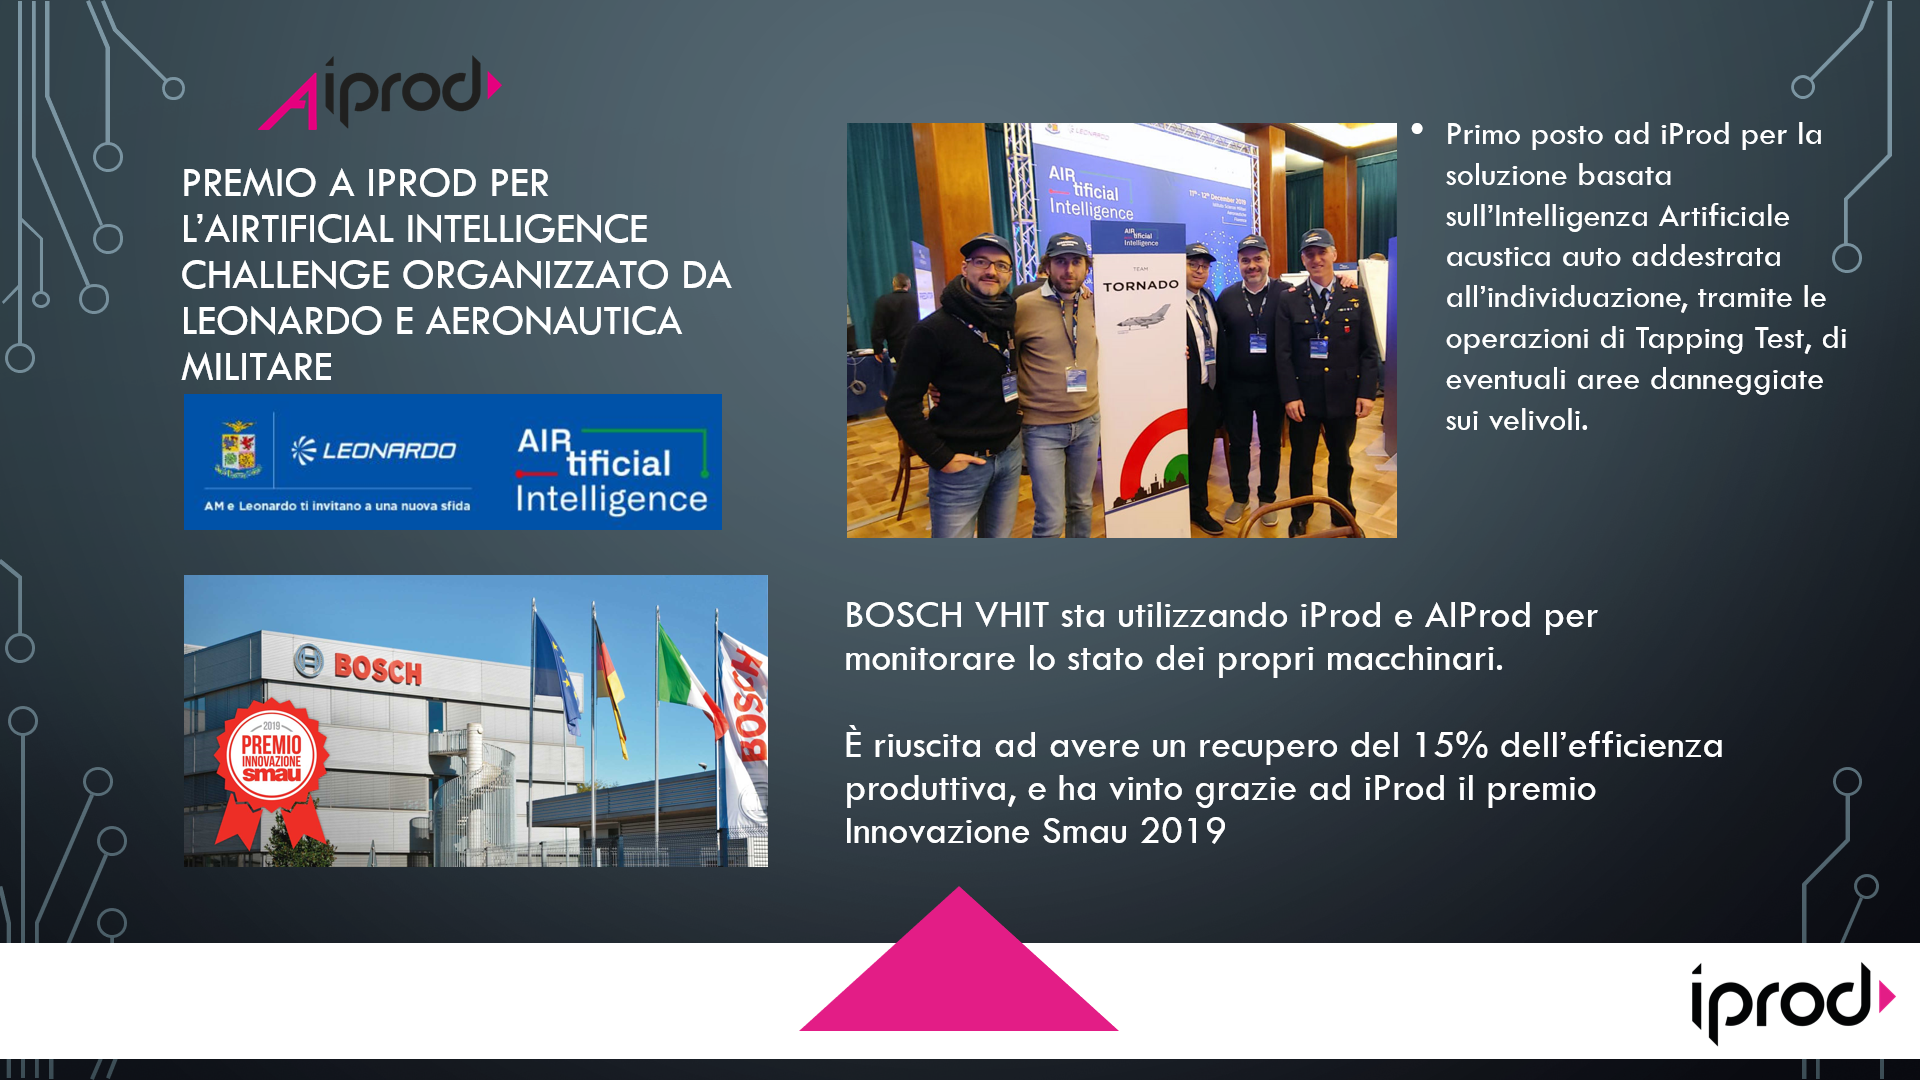 aiprod vince l'airtificial intelligence